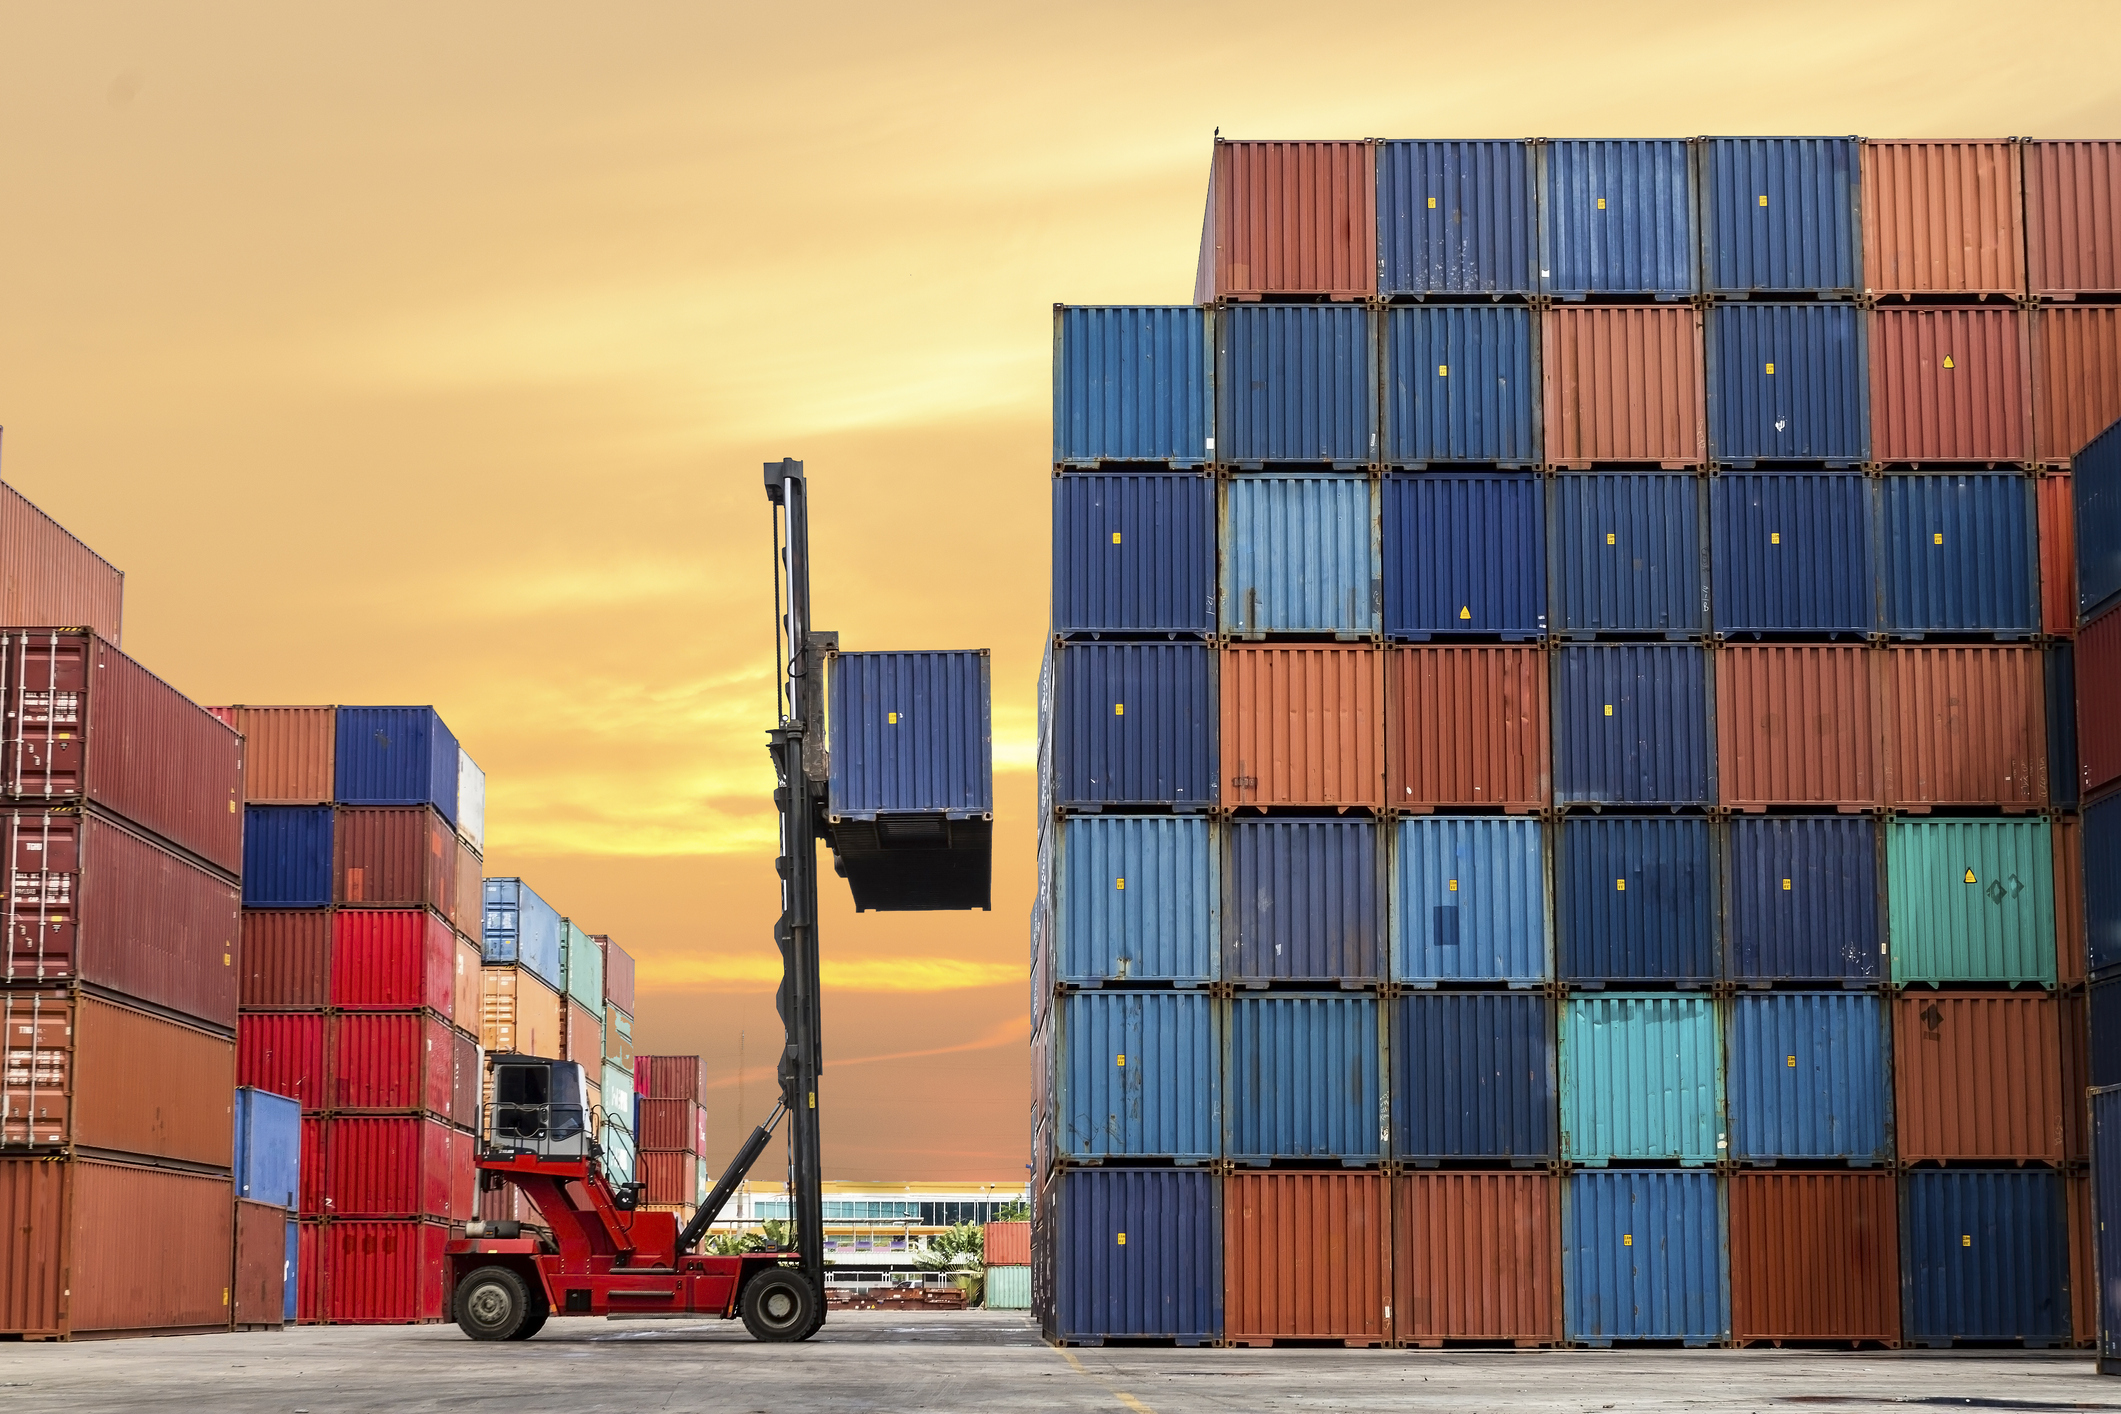 Crane-lifting-up-container-in-yard-486570435_2125x1416